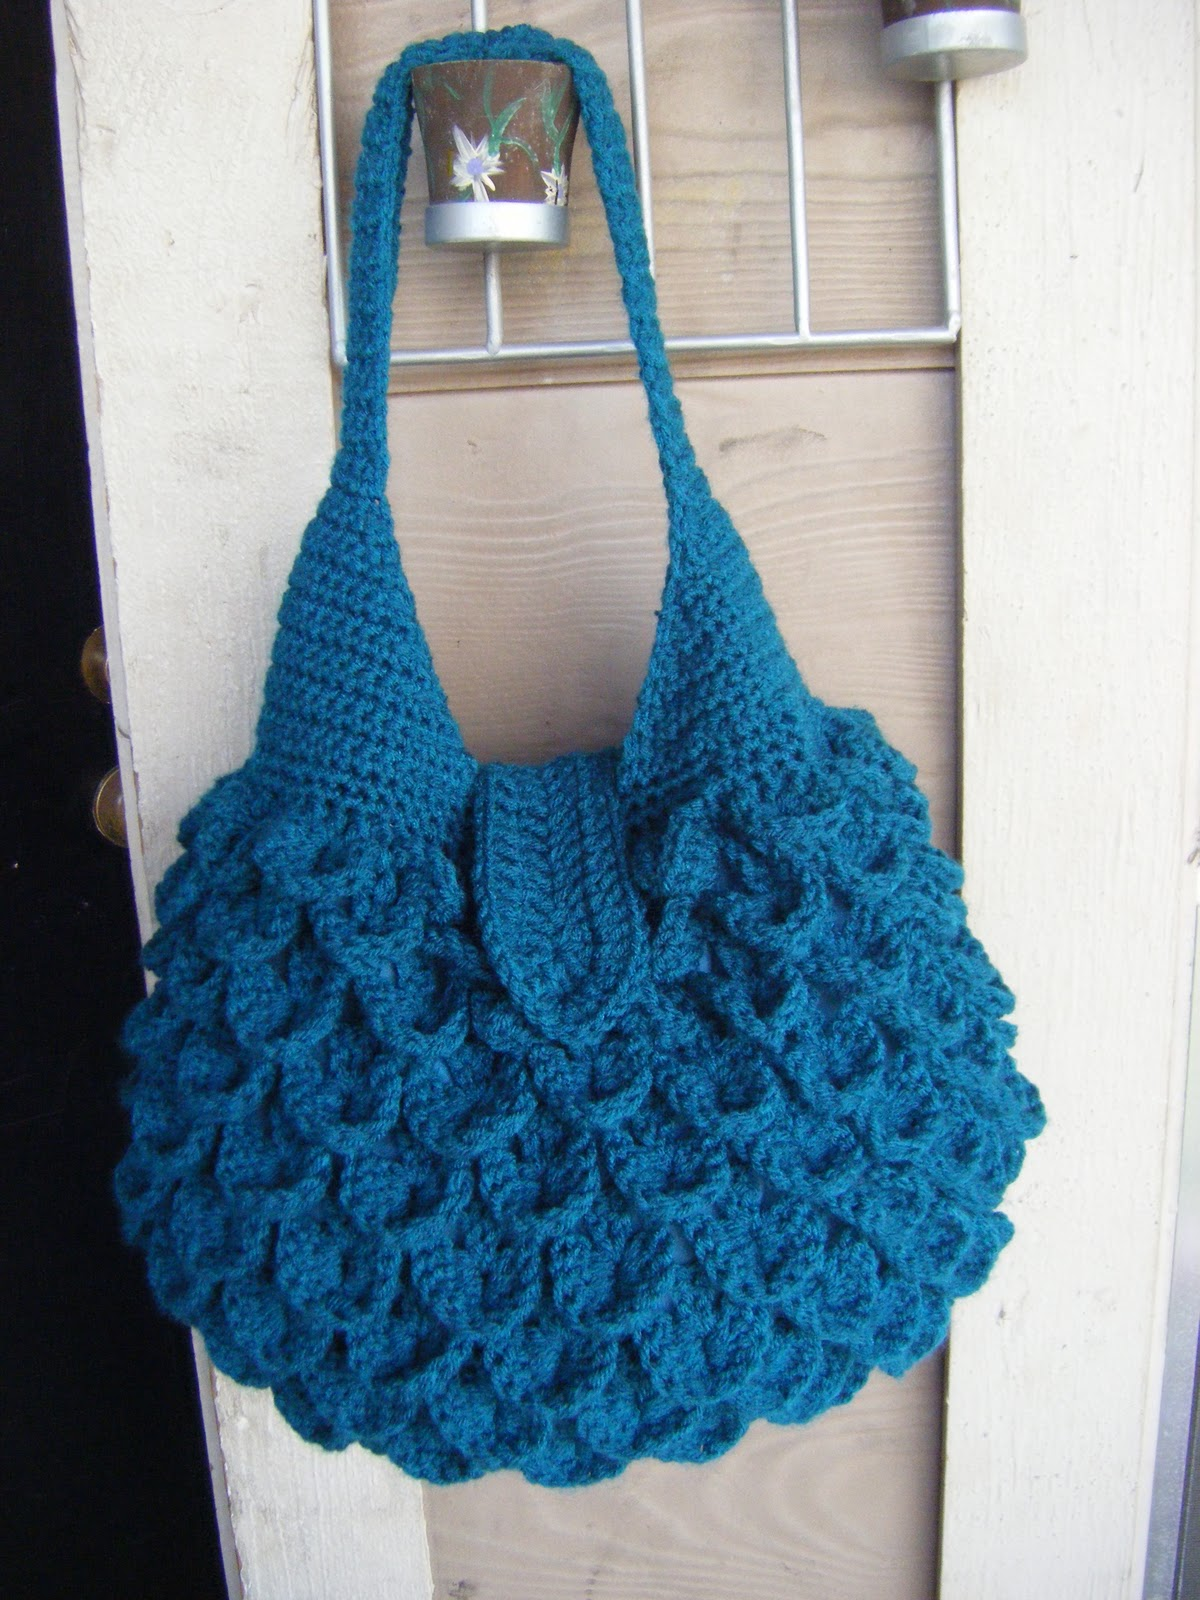 Free Patterns For Bags : FREE CROCHET BAG HOLDER PATTERN - Crochet and Knitting Patterns